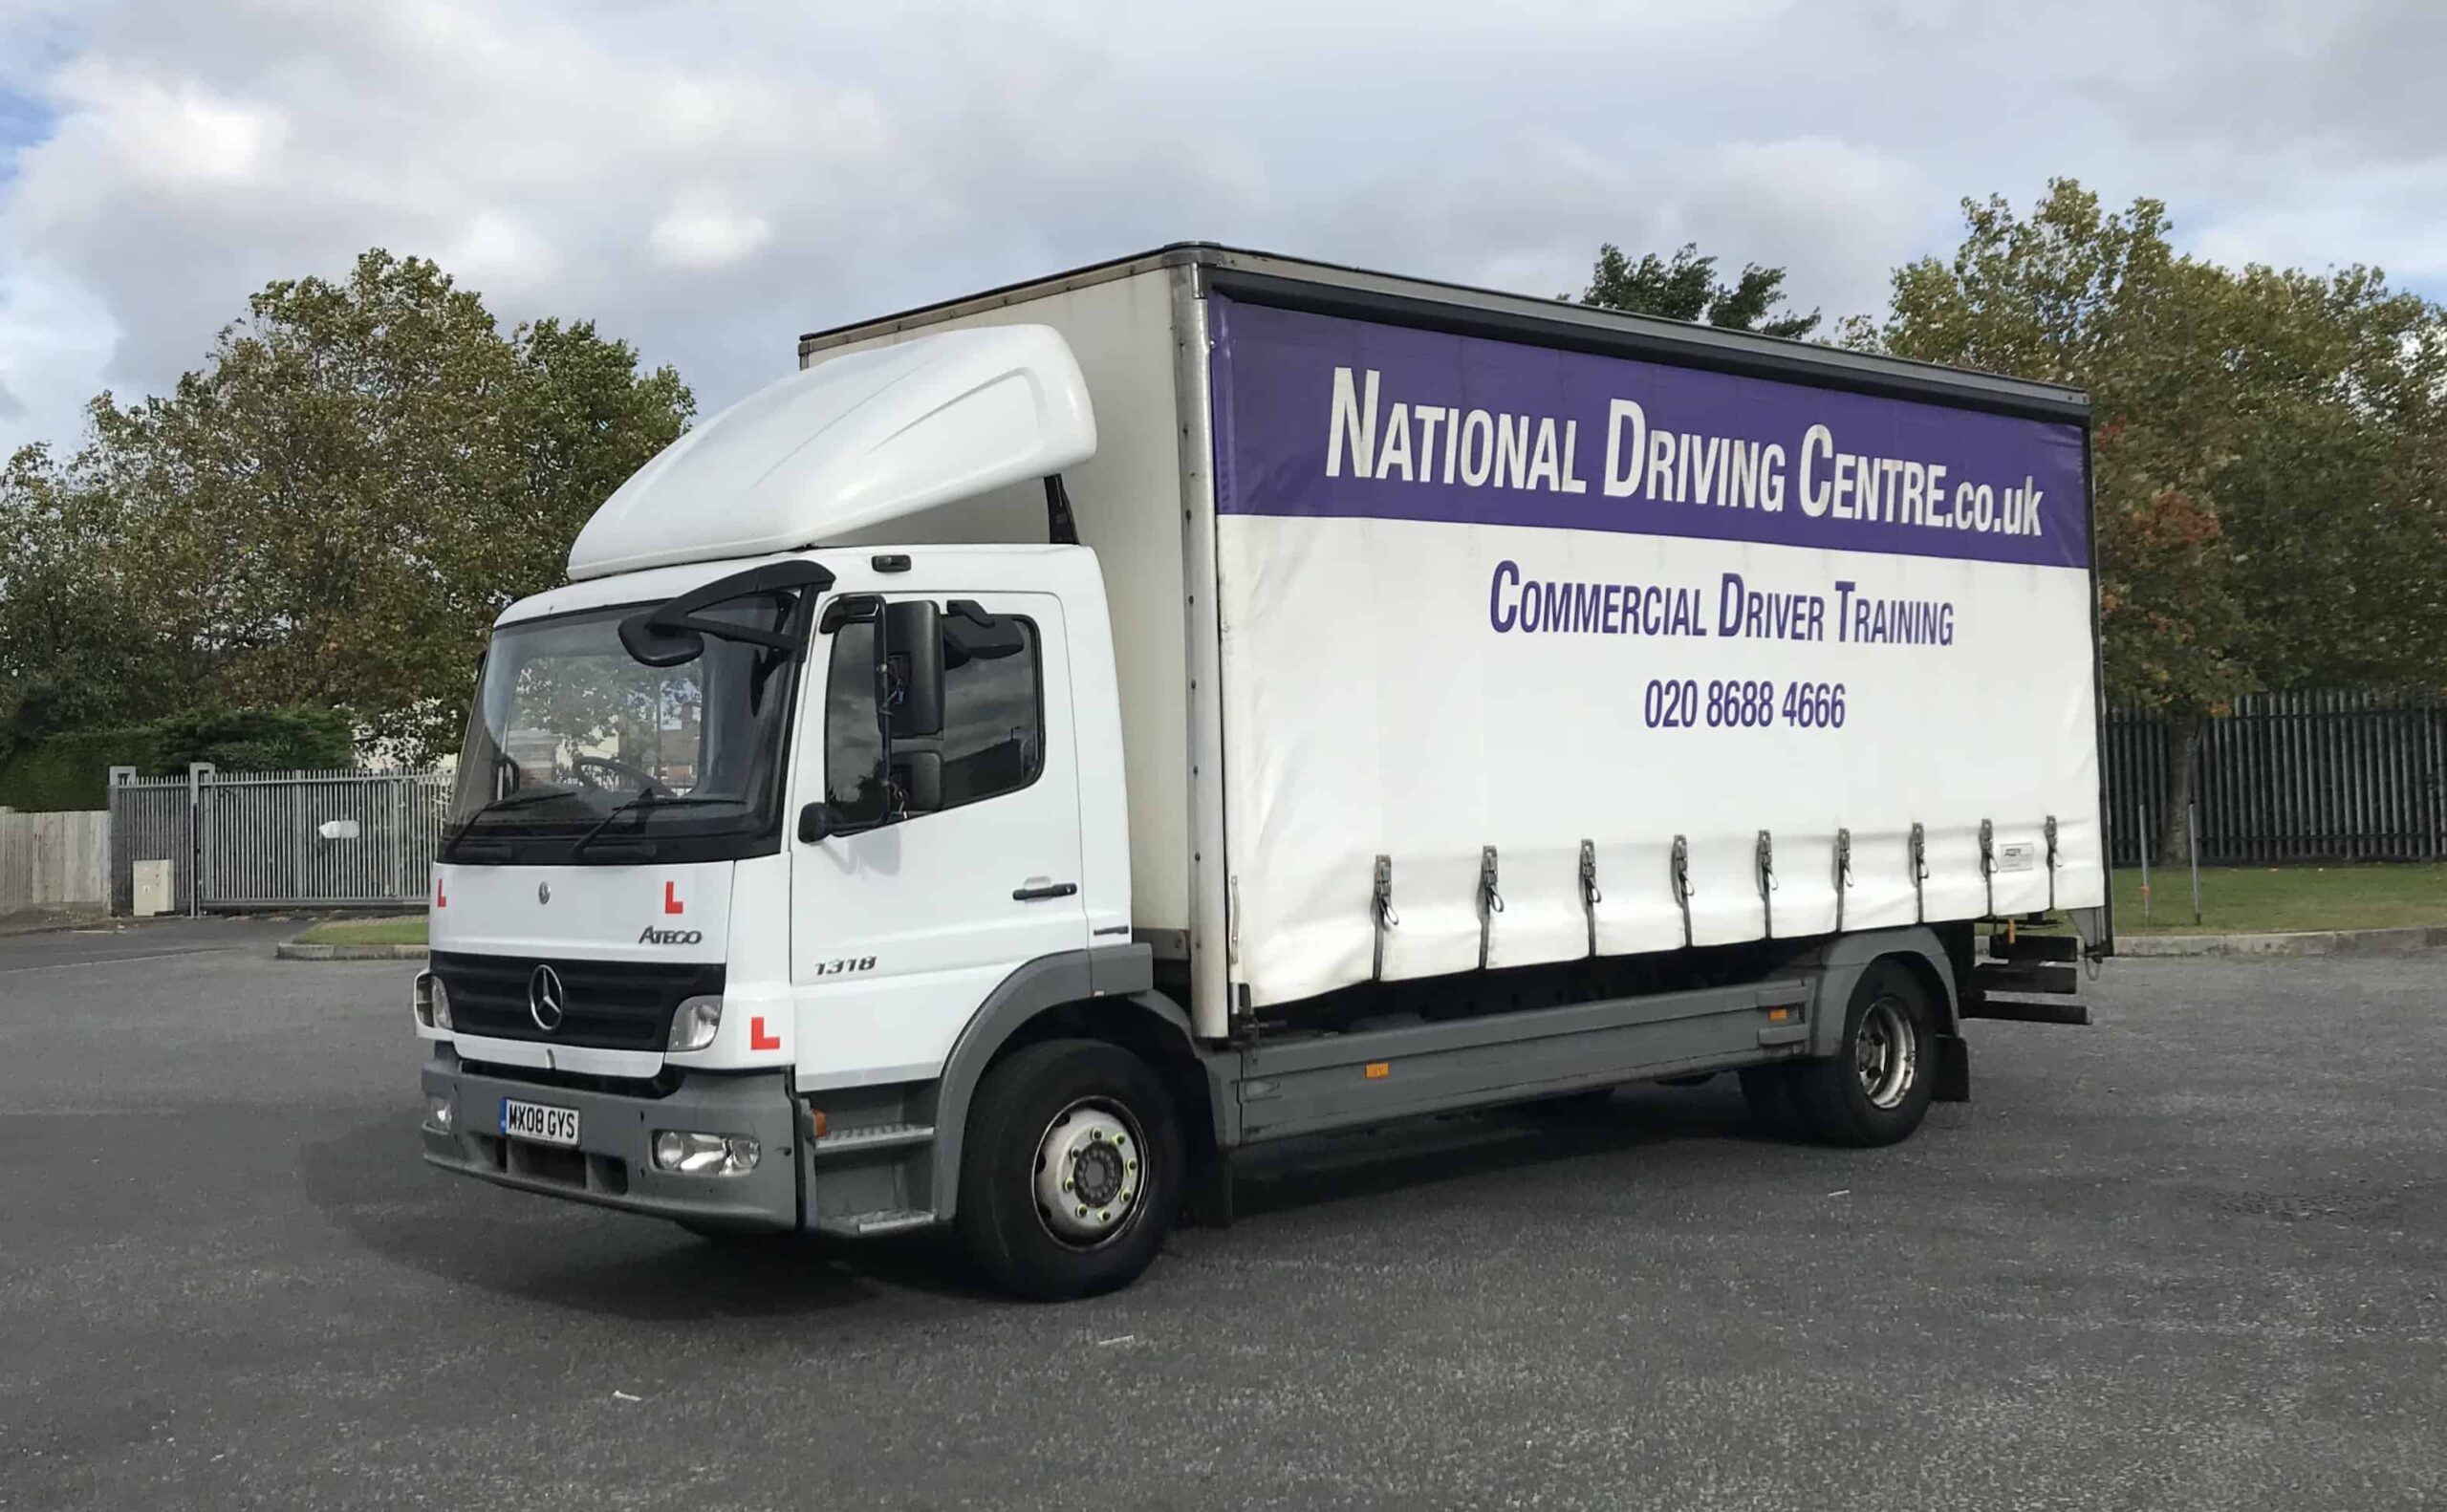 Class 2 HGV / LGV lorry with National Driving Centre signage